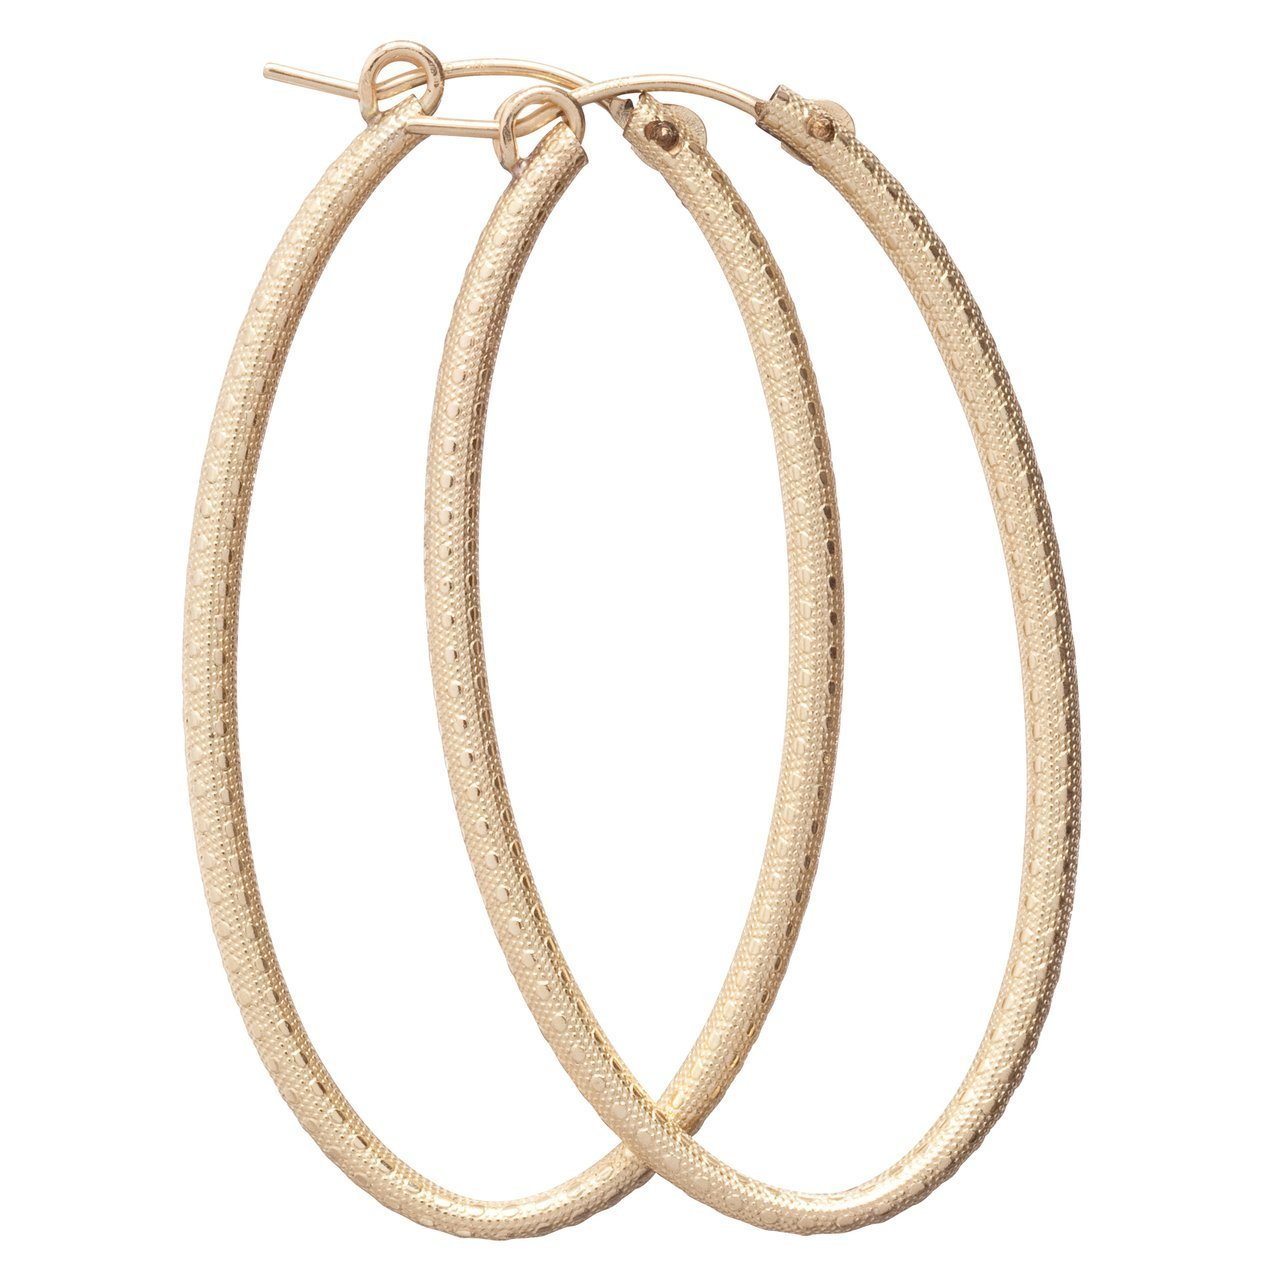 "OVAL GOLD 2"" HOOP- TEXTURED - Molly's! A Chic and Unique Boutique"